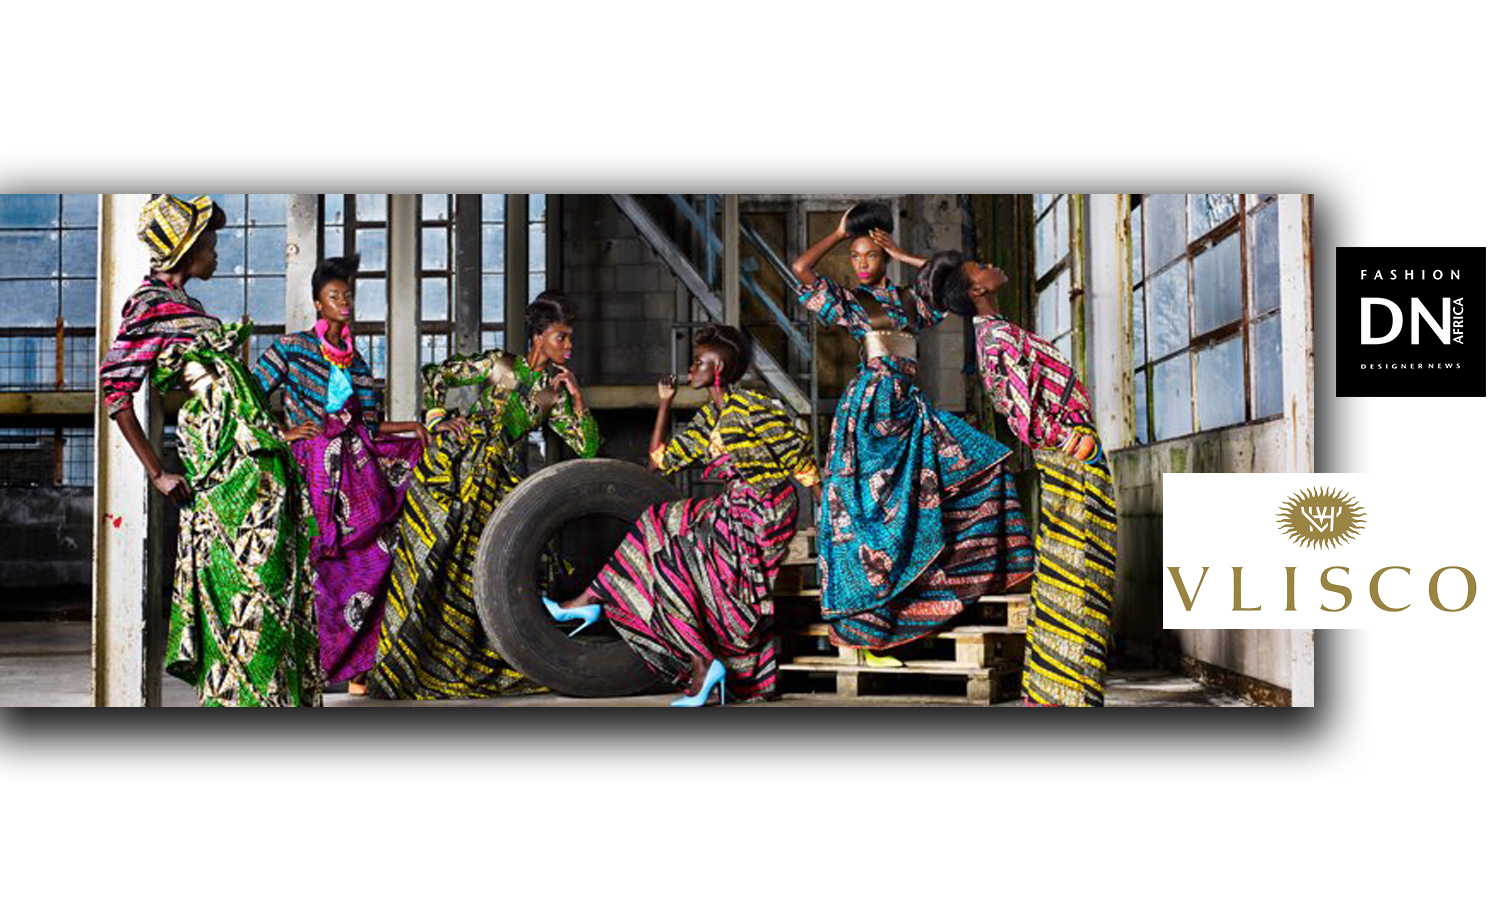 DNAFRICA-DN AFRICA-VLISCO-170 YEARS-2017